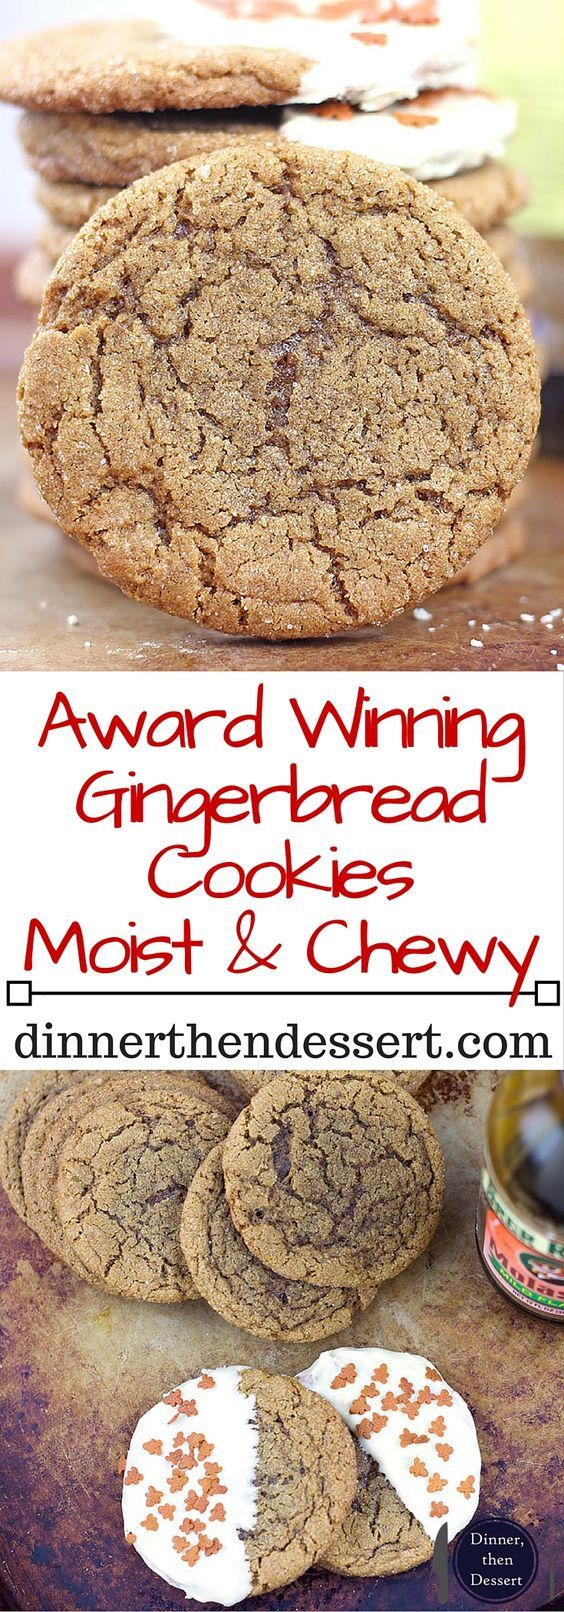 These Gingerbread Cookies will get you feeling festive and make your Christmas Cookie Exchange clamor for the recipe! Given to me by a family friend they have won three cookie competitions in less than 10 years!